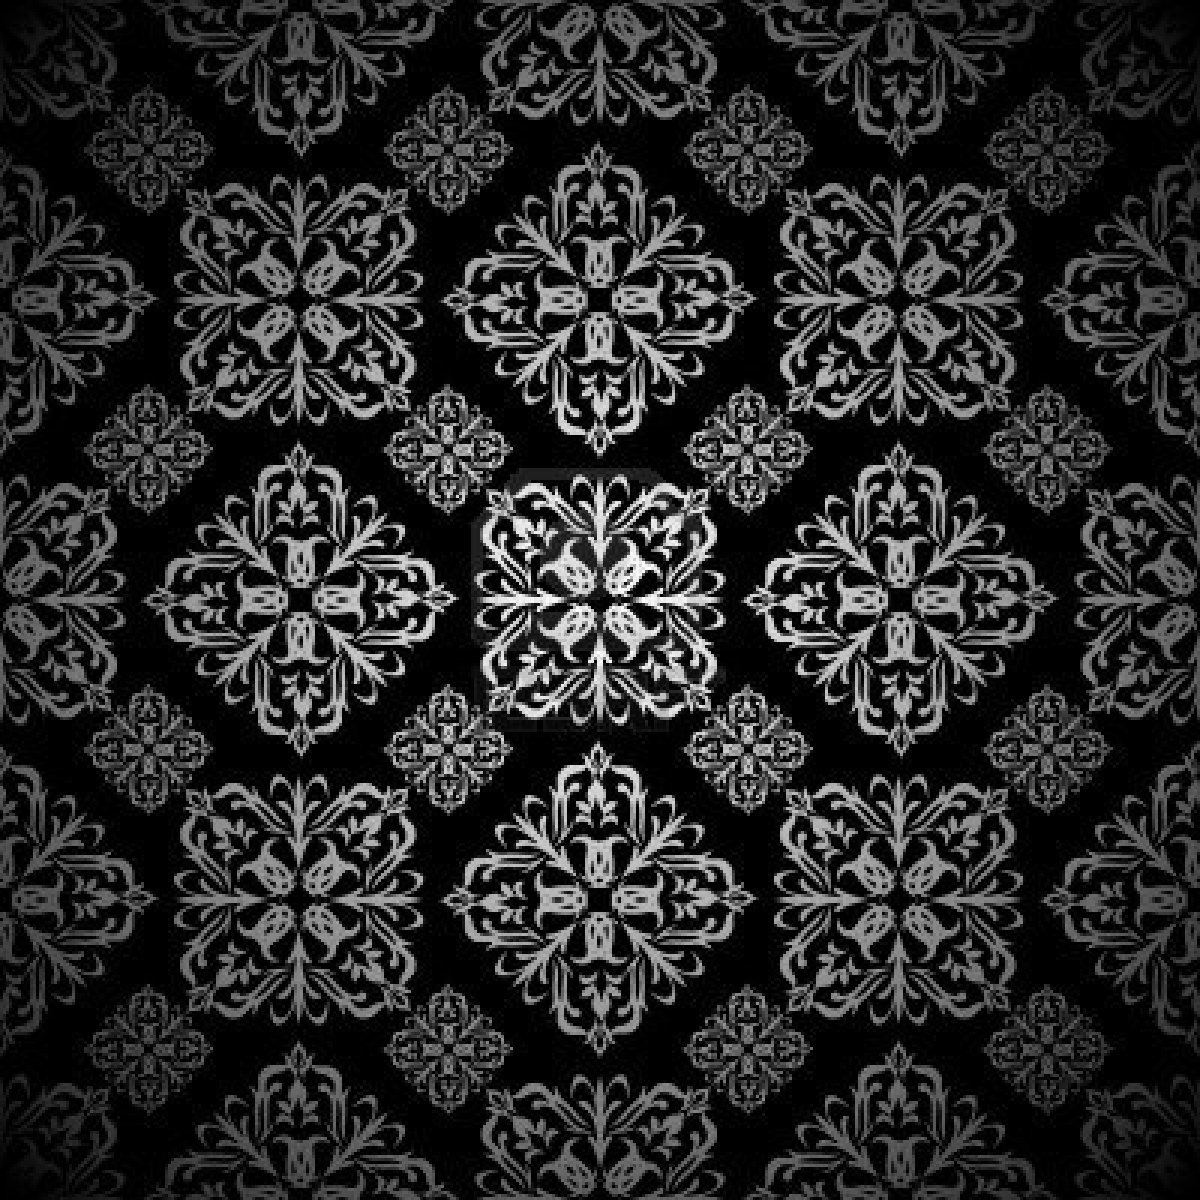 7223443 silver and black seamless tile background wallpaper pattern 1200x1200